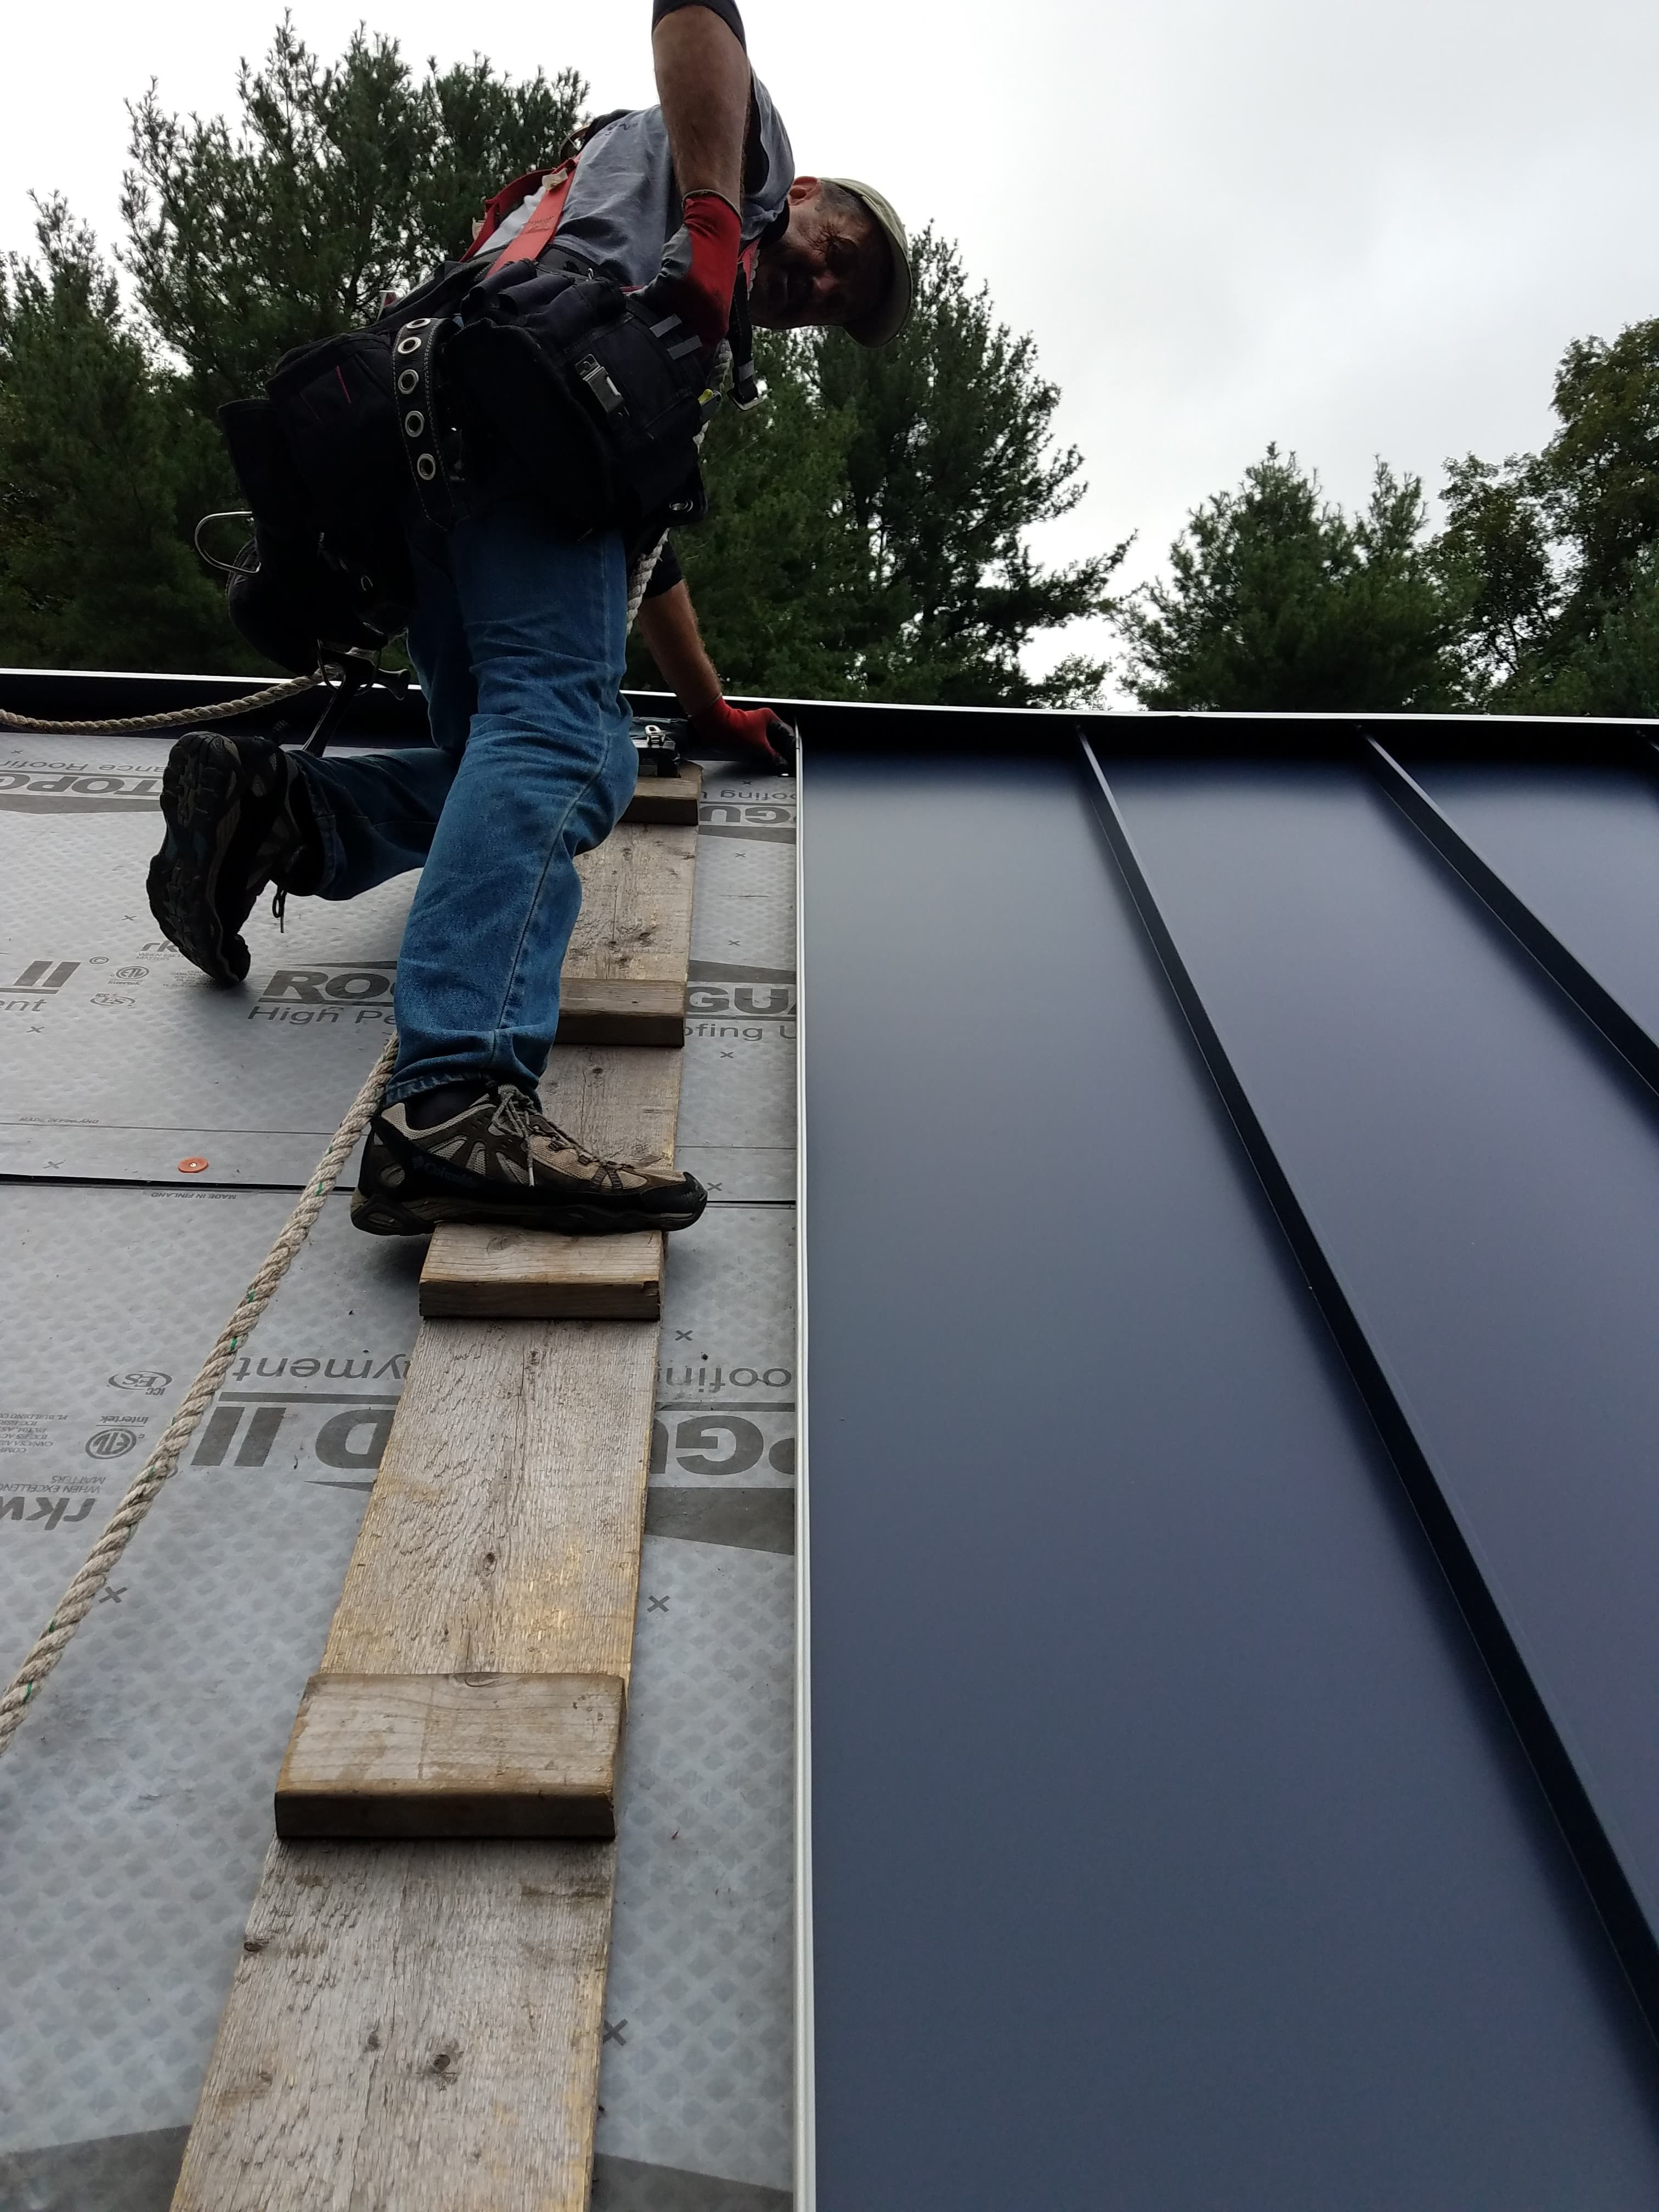 Installing Standing Seam Panels On A Steep Pitched Roof In 2020 Standing Seam Metal Roof Standing Seam Roof Roof Cladding